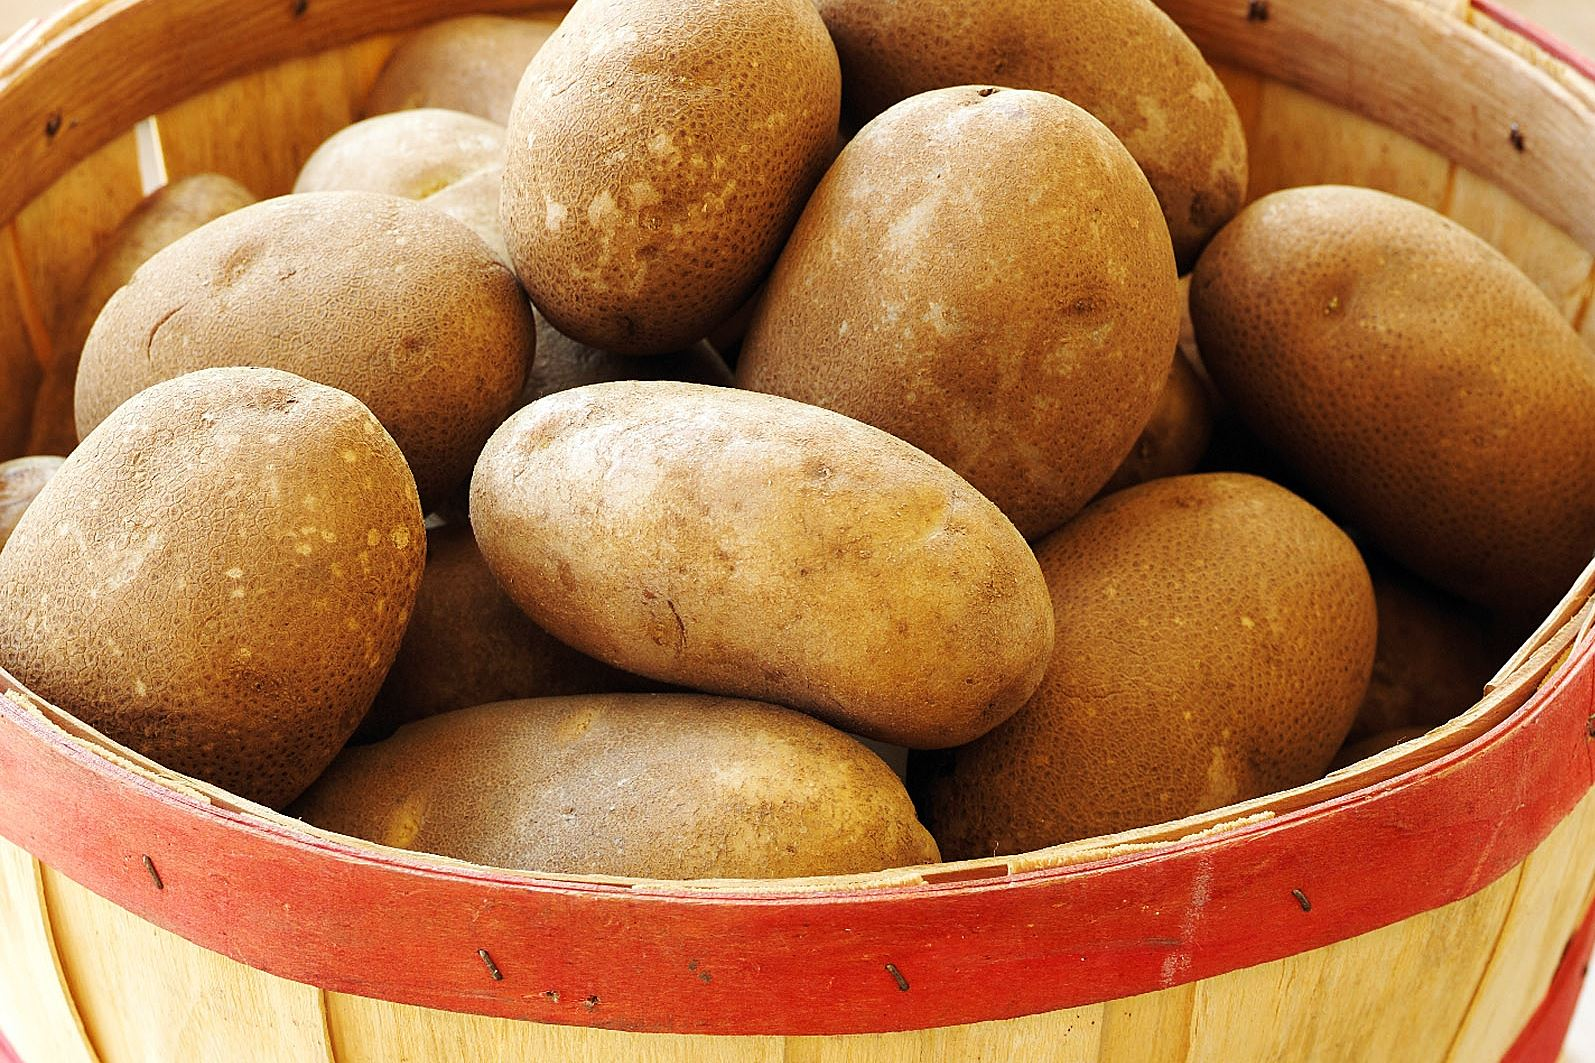 russet potatoes-4 Russet potatoes are medium- to large-sized potatoes that are preferred for baking and mashing.